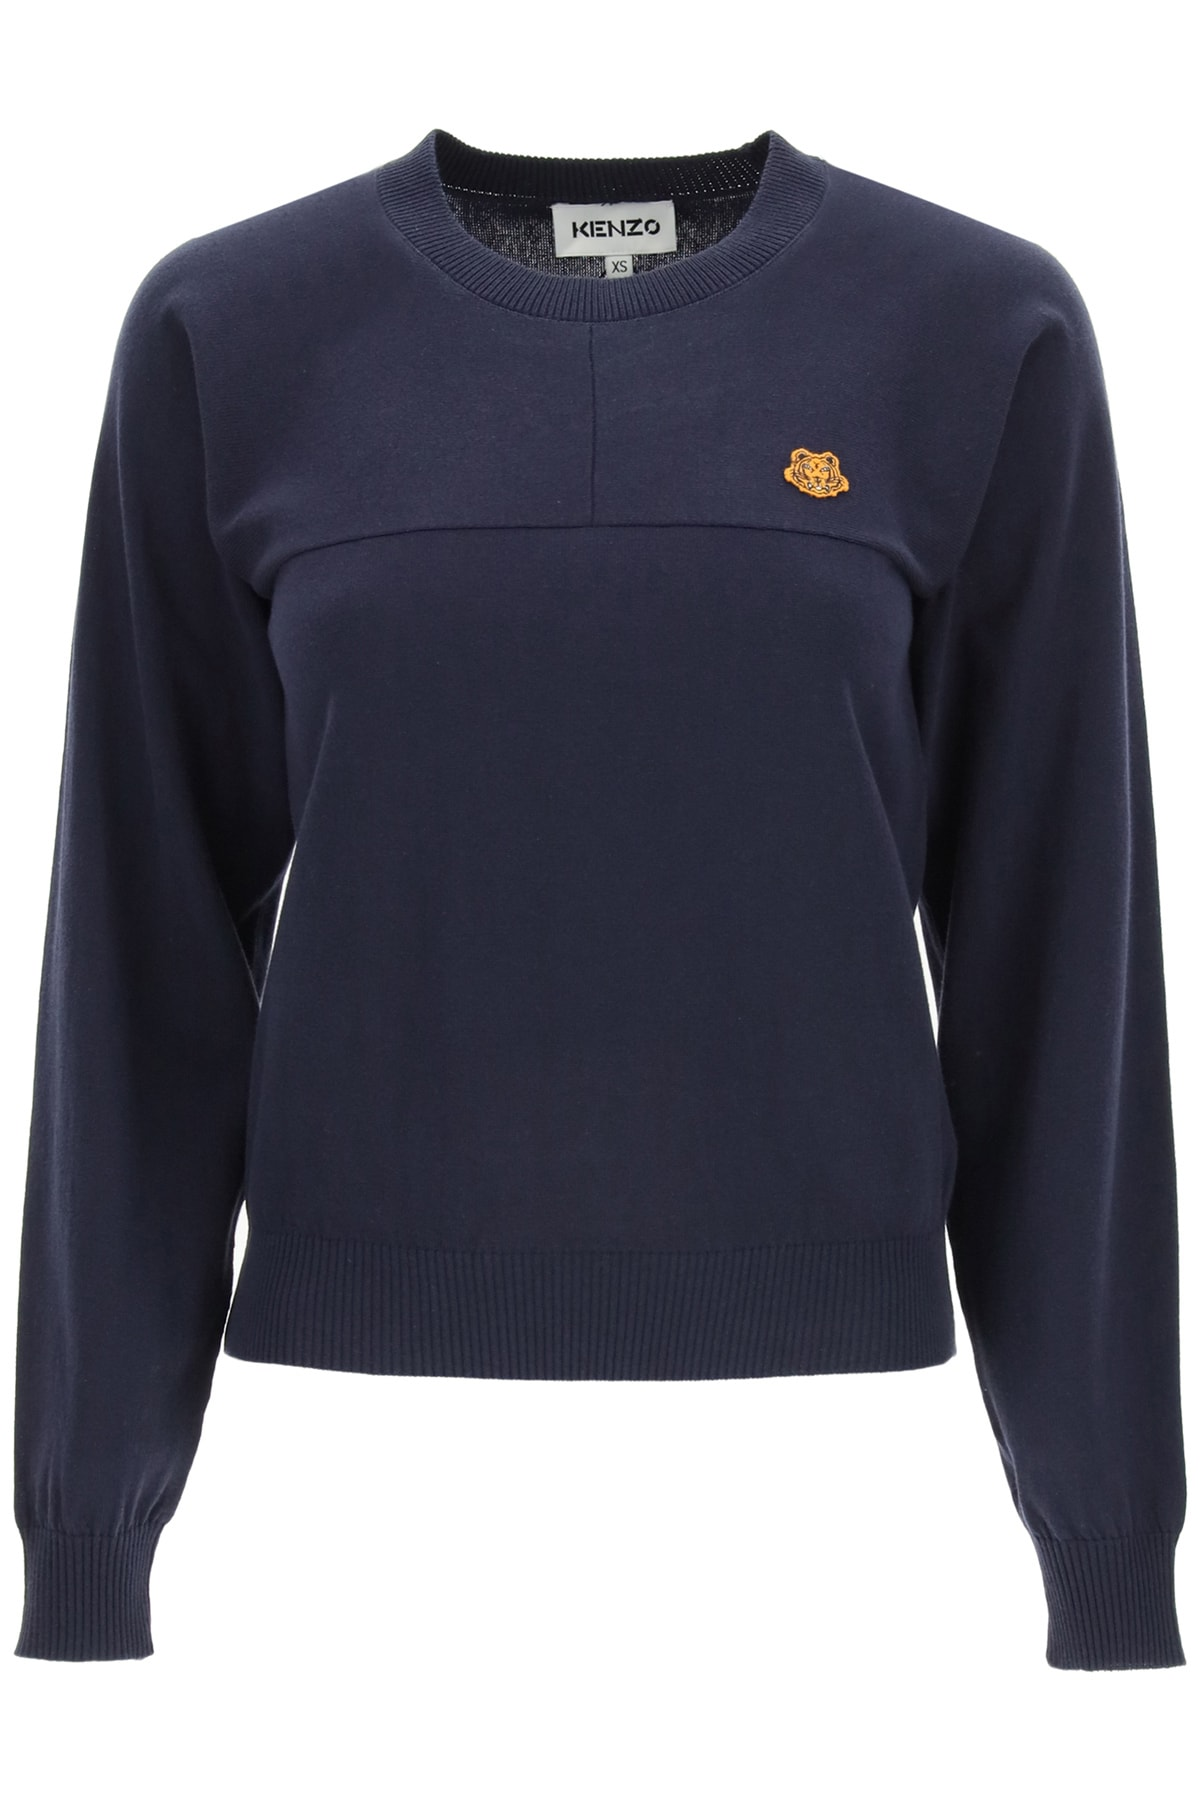 Kenzo Cotton Sweater Tiger Crest Patch In Navy Blue (blue)